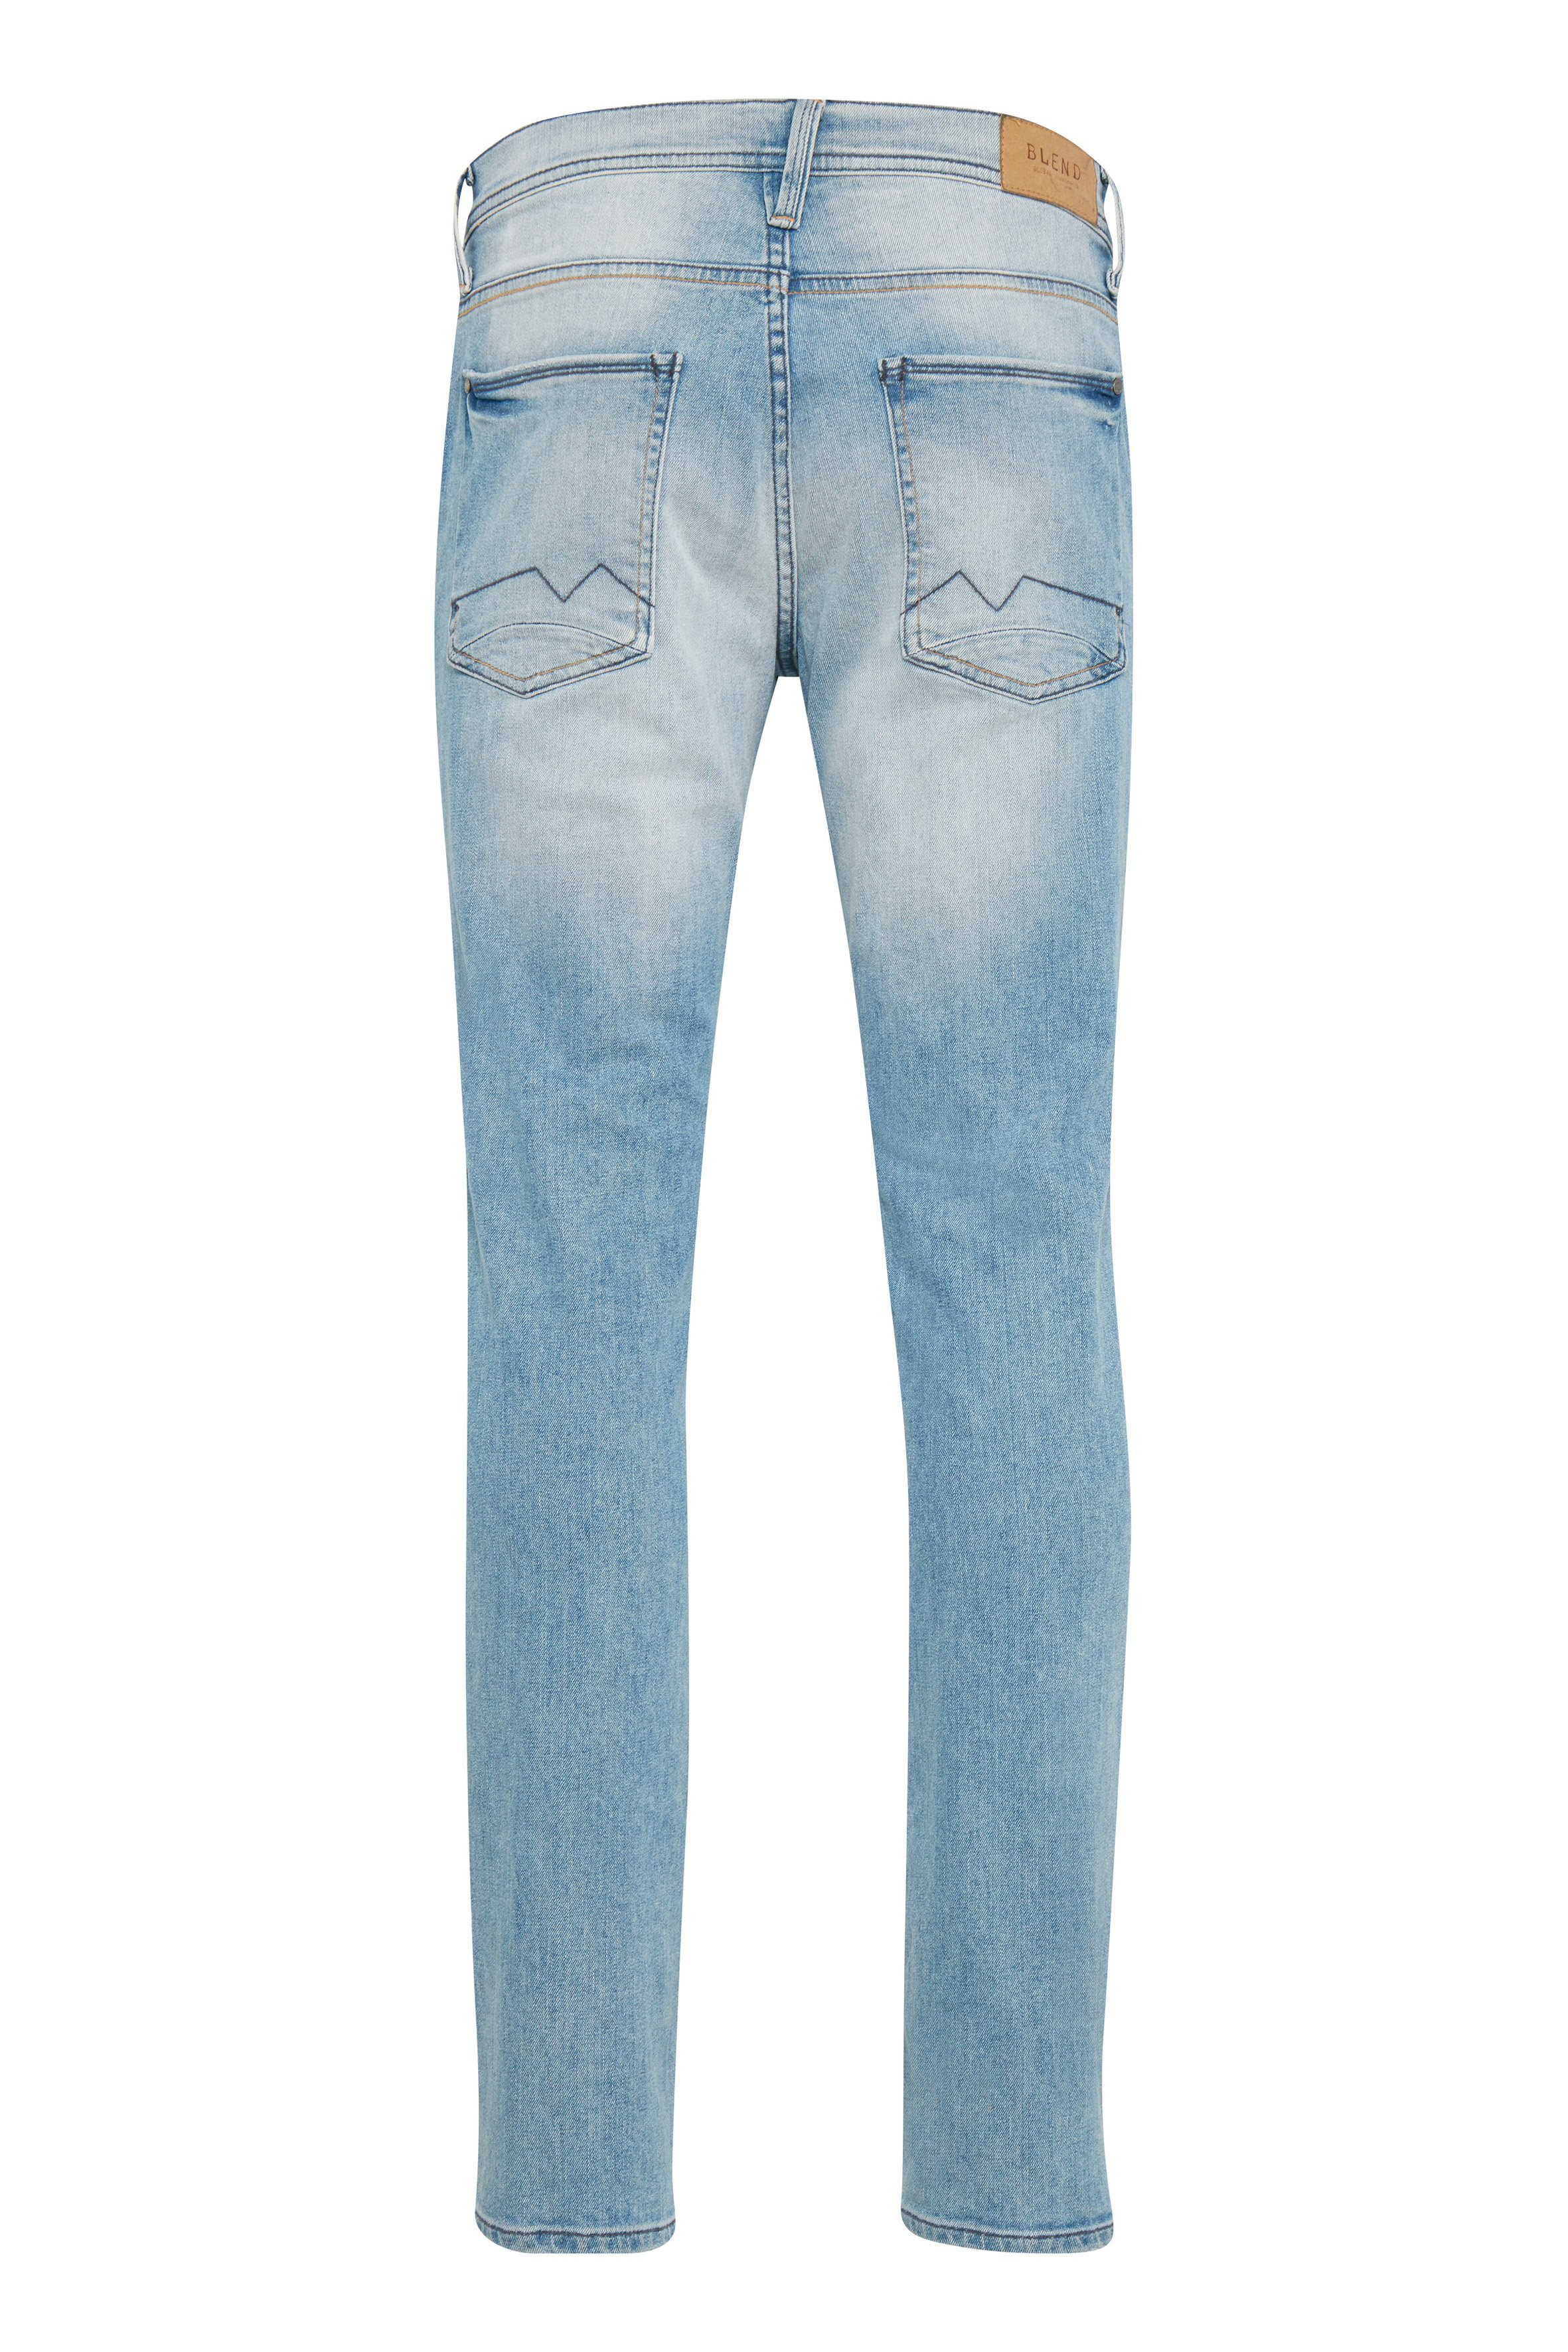 Denim lightblue Twister jeans fra Blend He – Køb Denim lightblue Twister jeans fra str. 27-40 her